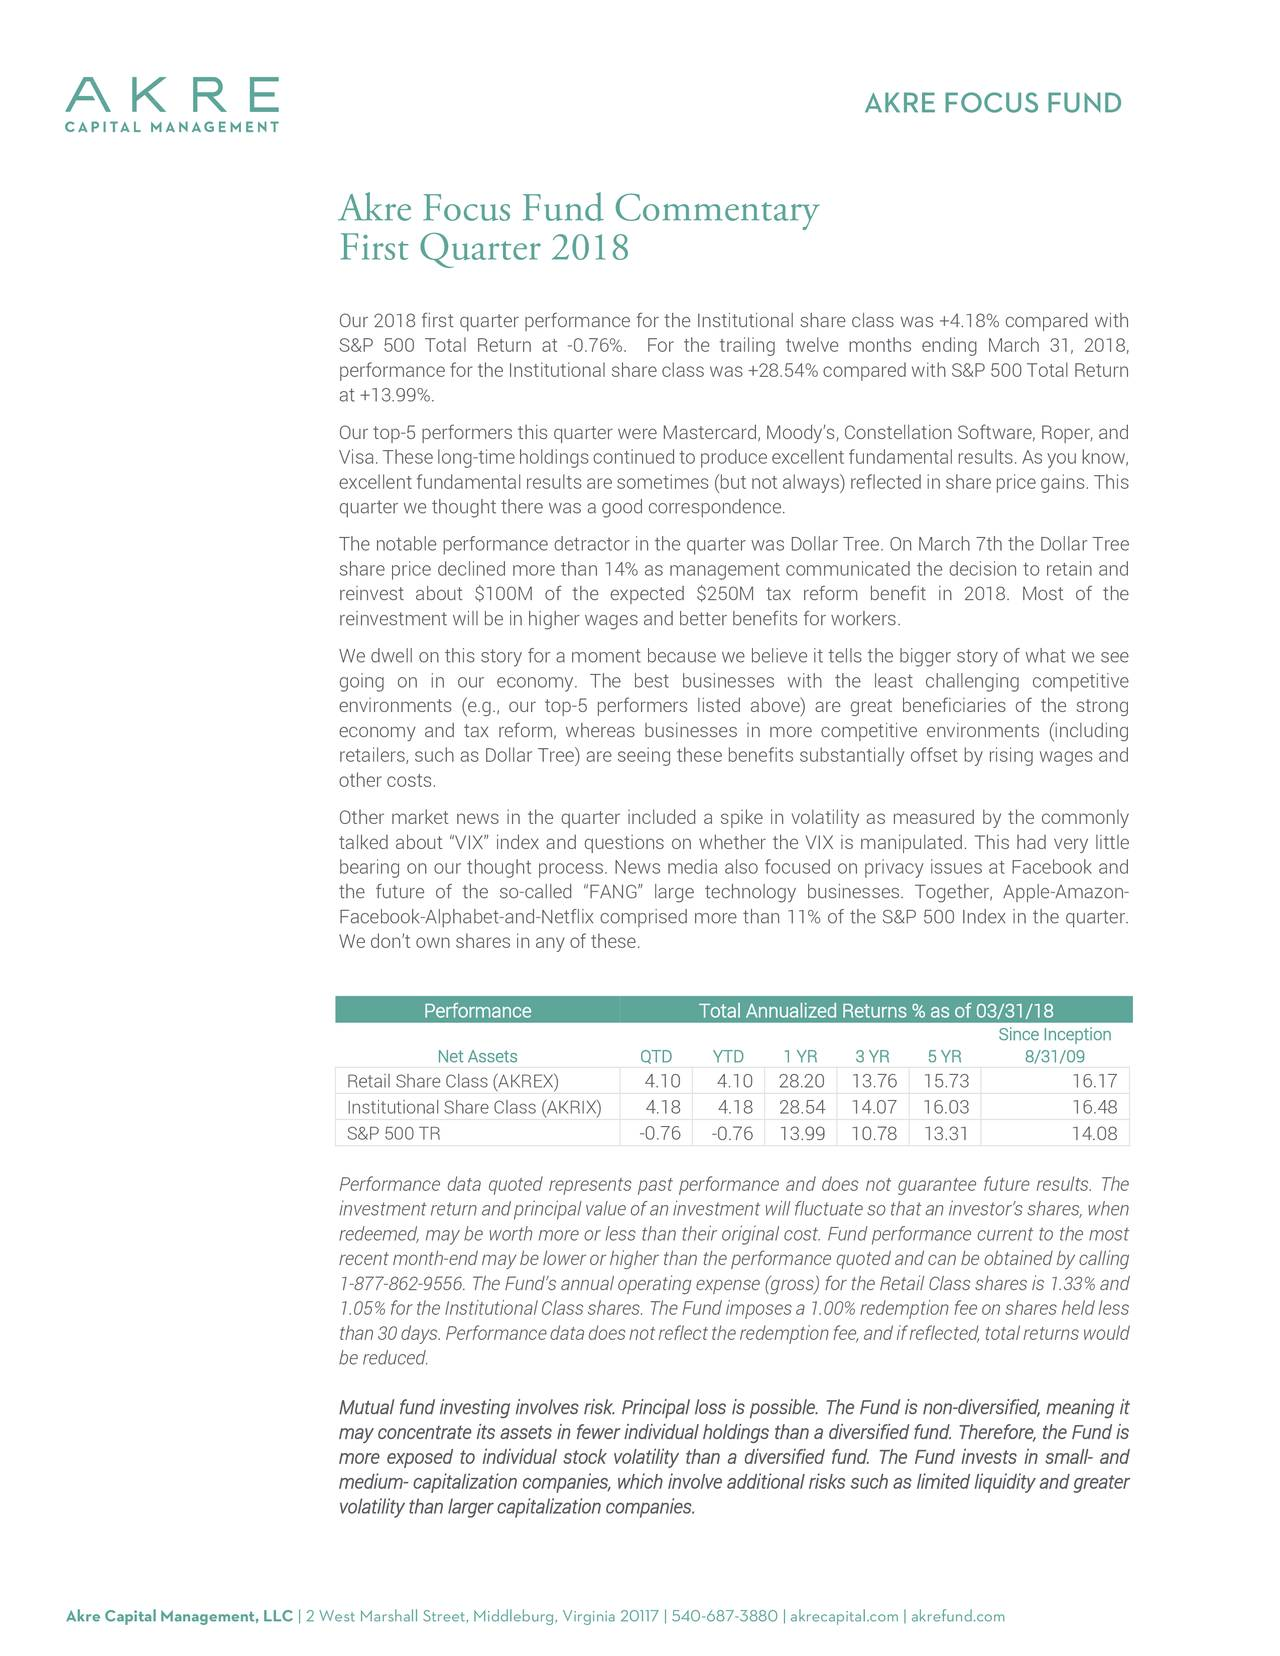 Akre Focus Fund Commentary First Quarter 2018 - Dollar ...